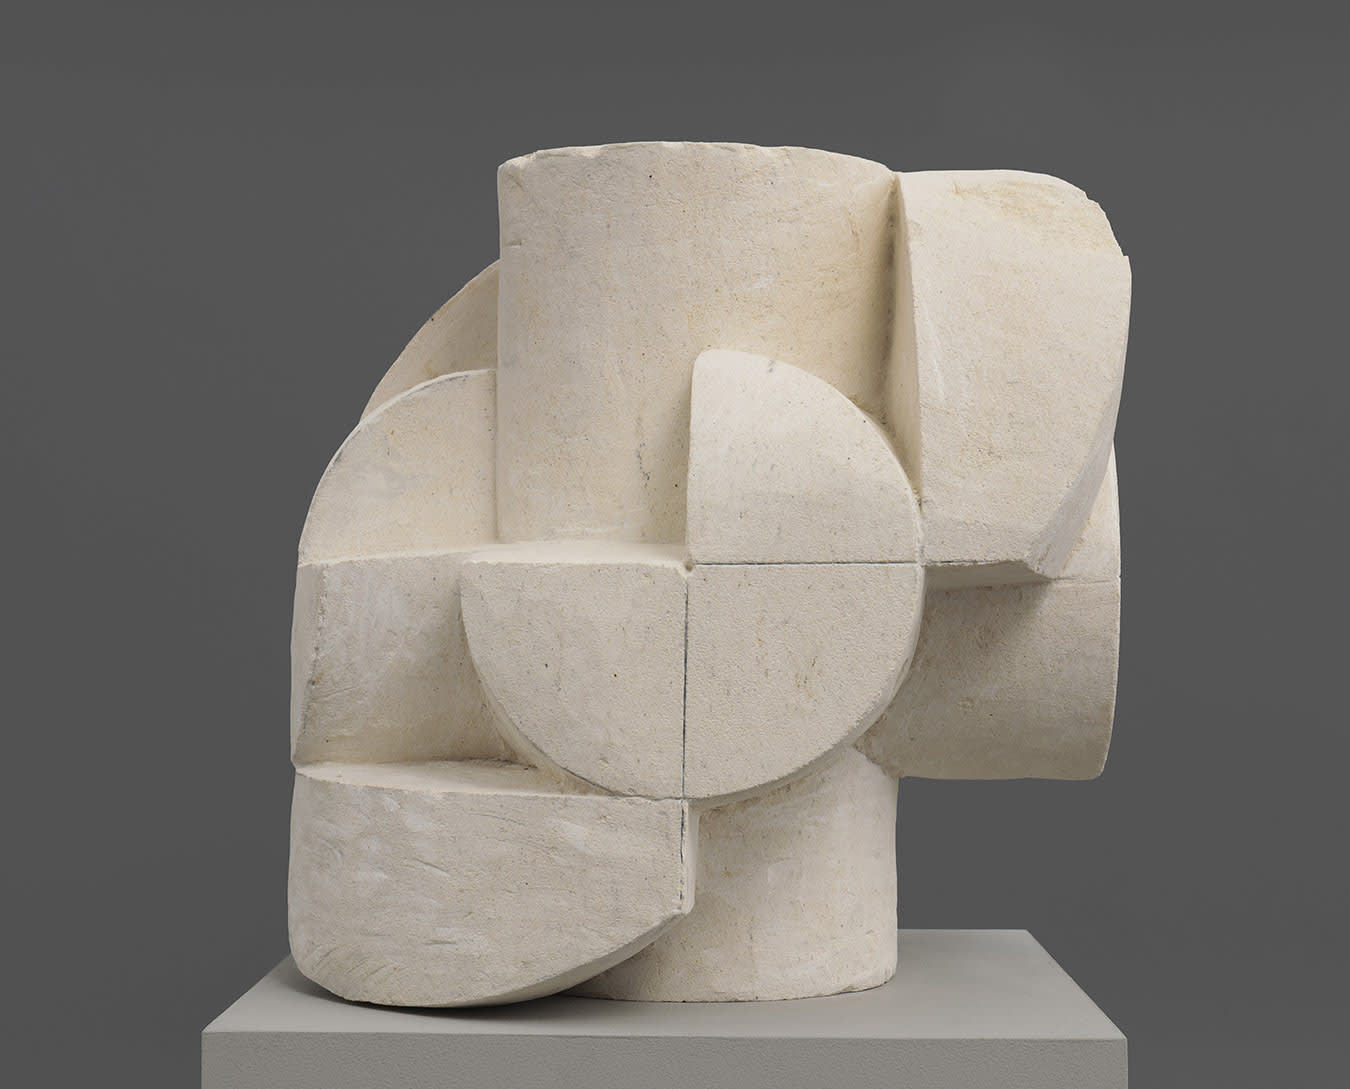 An abstract sculpture by Gabriel Orozco